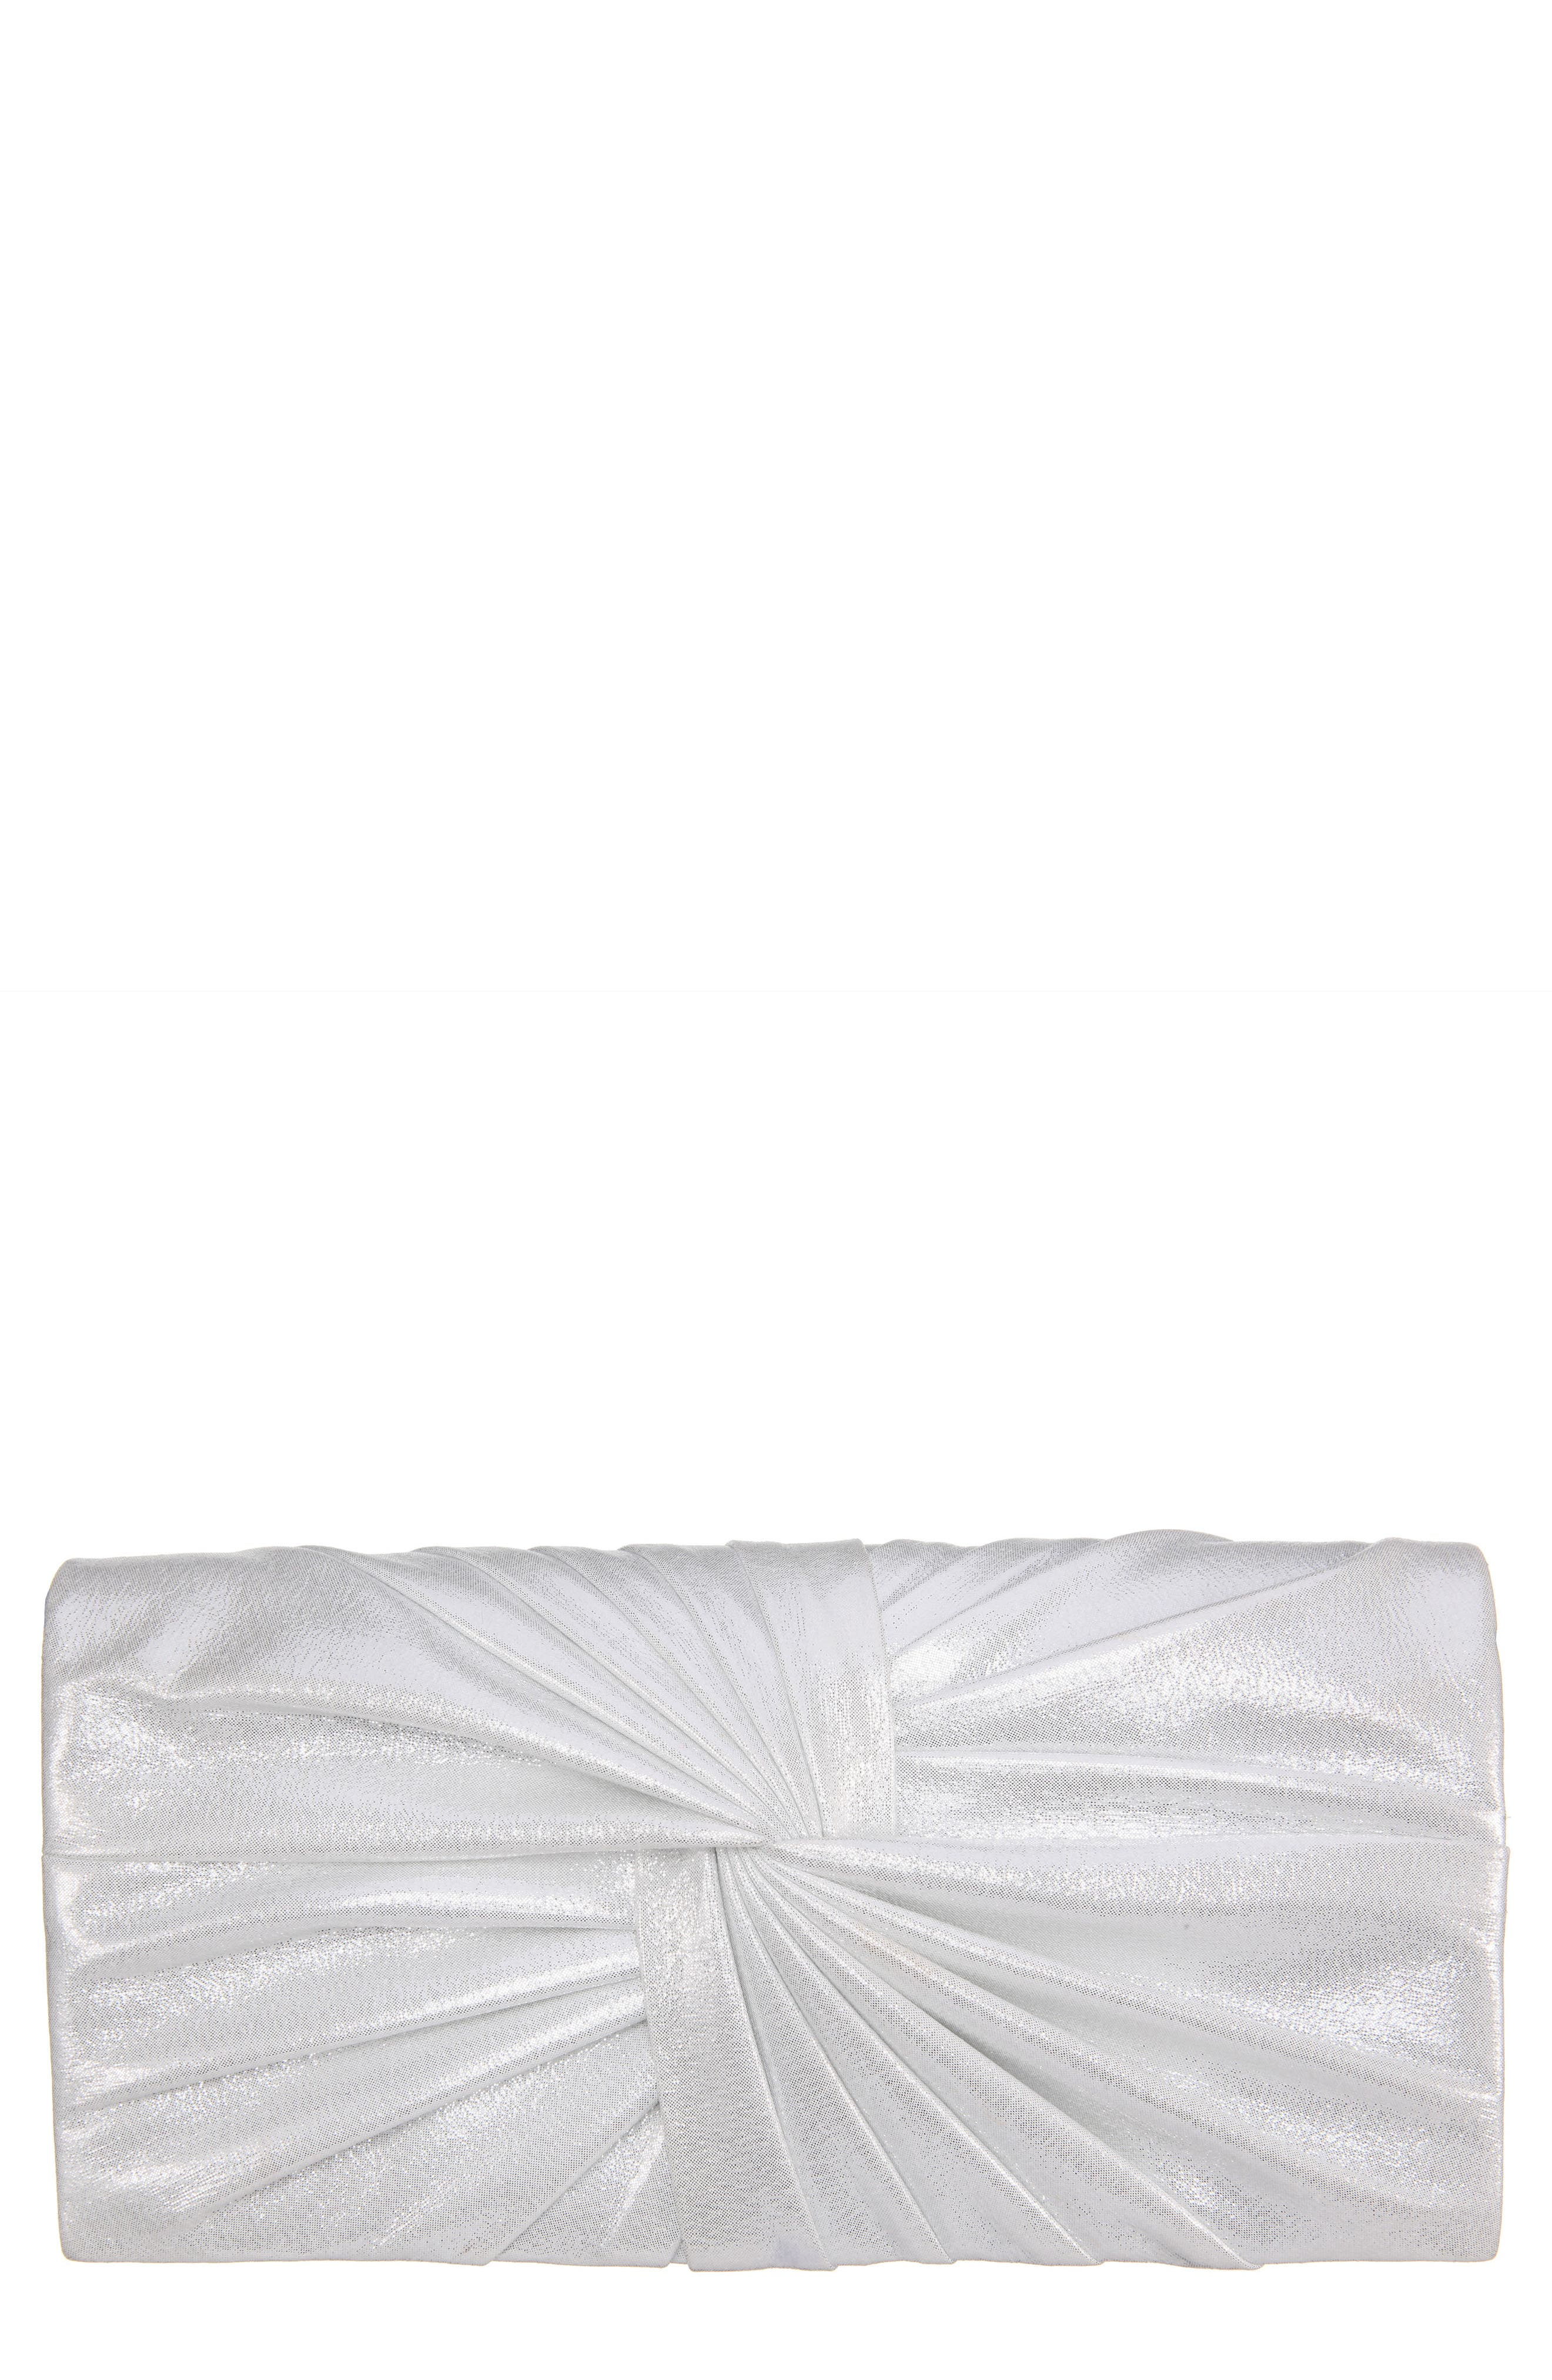 Durham Twisted Knot Clutch,                         Main,                         color, LT SILVER